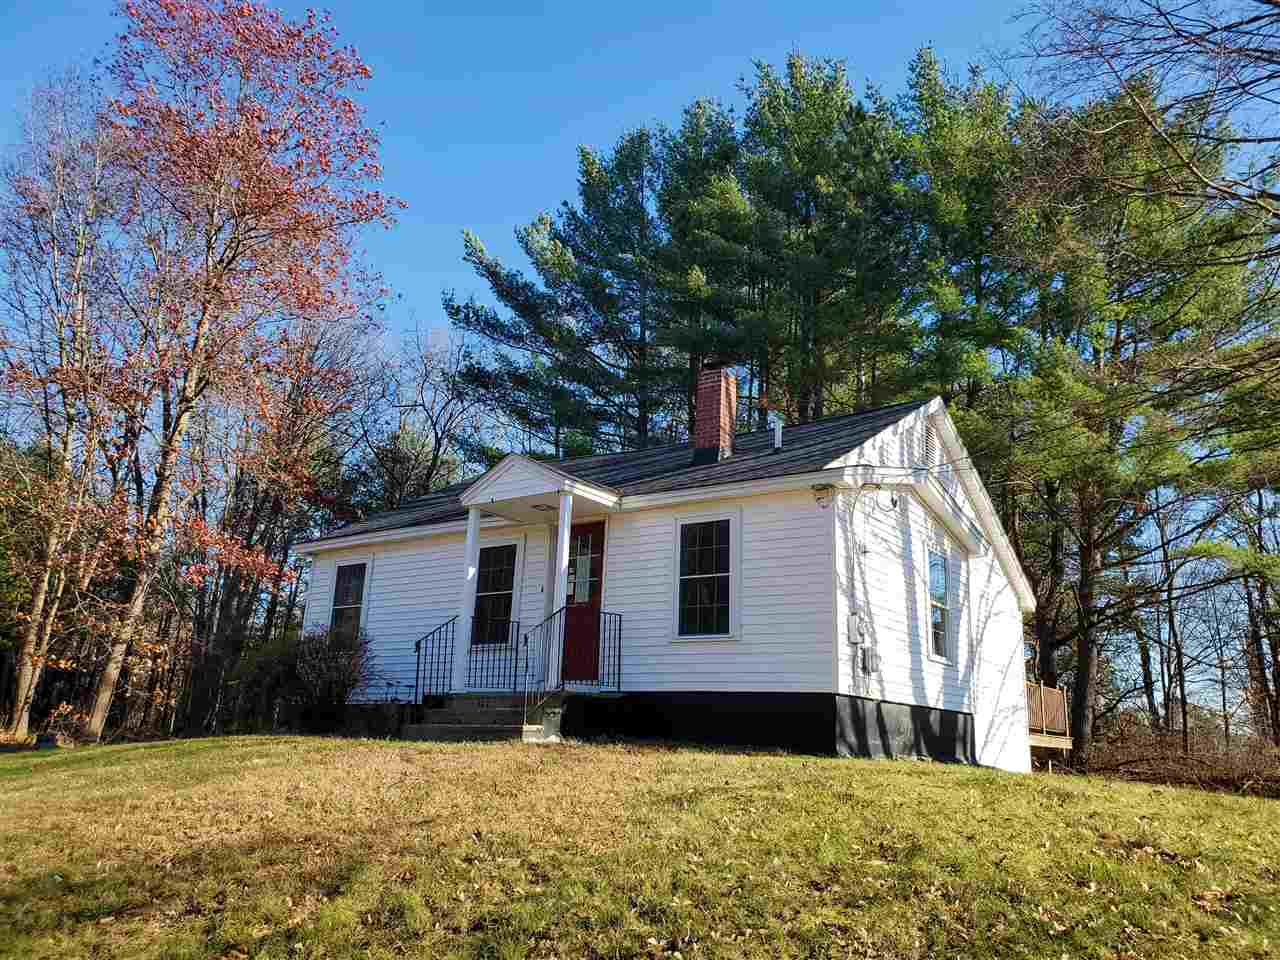 MLS 4787324: 526A Mammoth Road, Londonderry NH